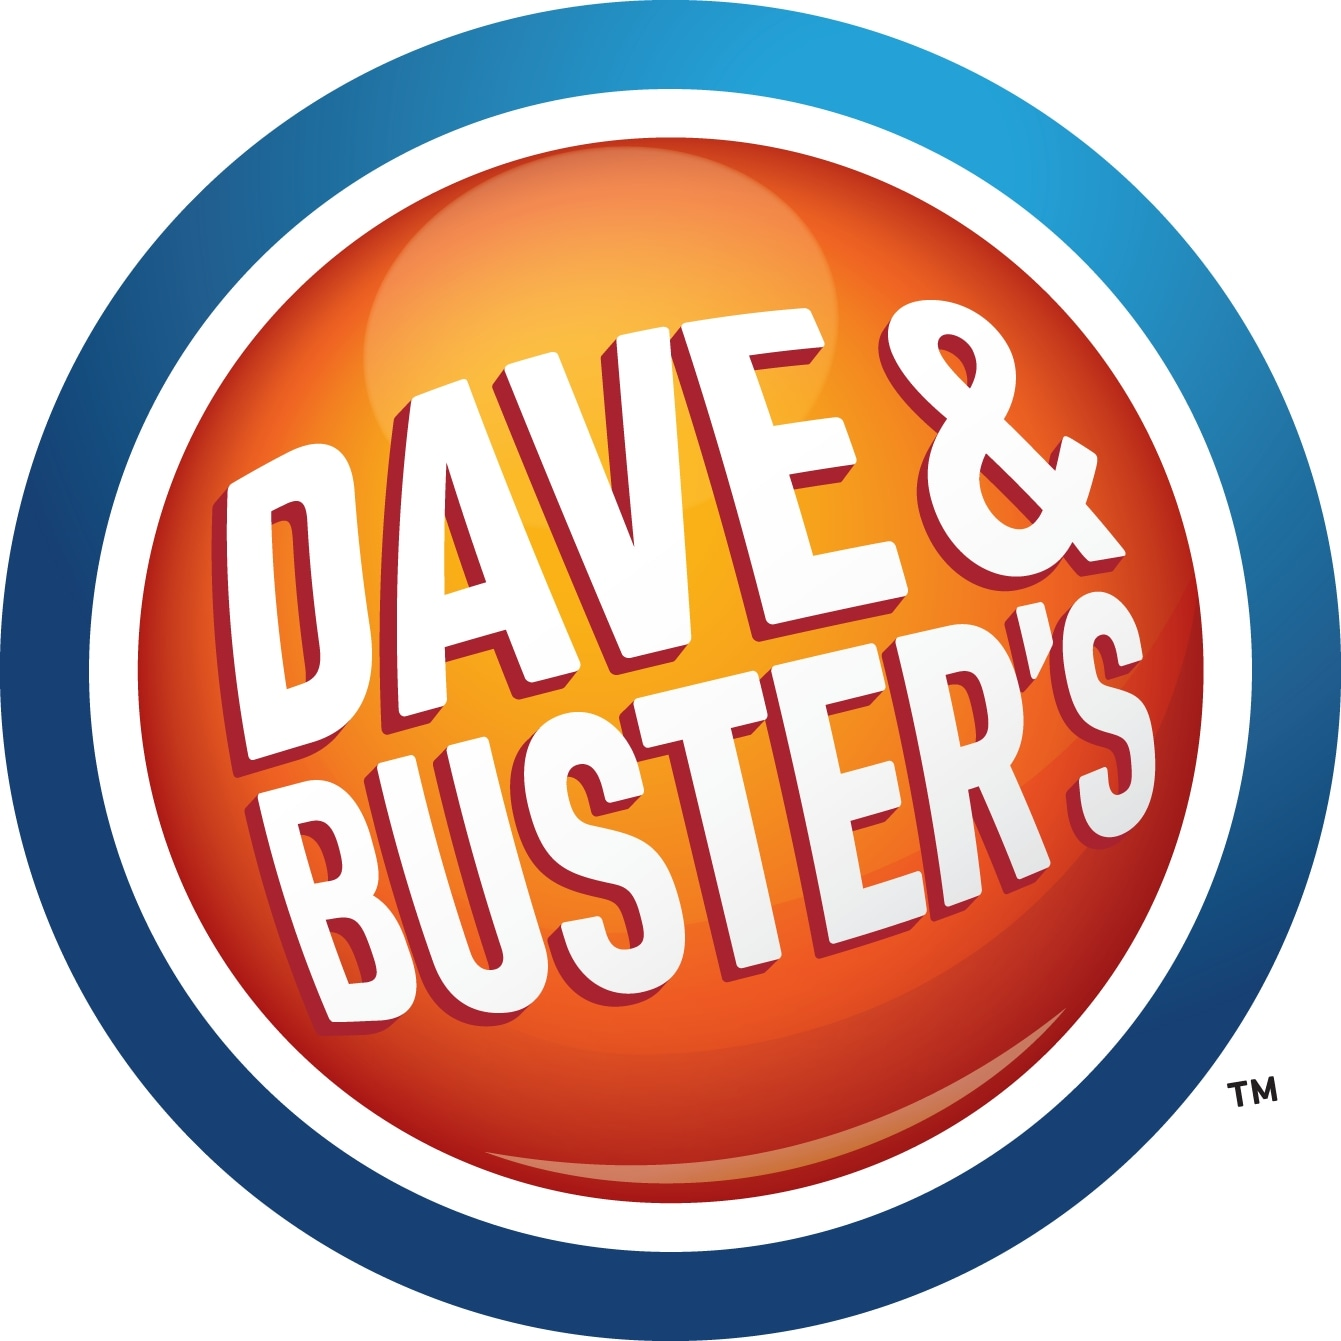 Dave & Buster's promo codes